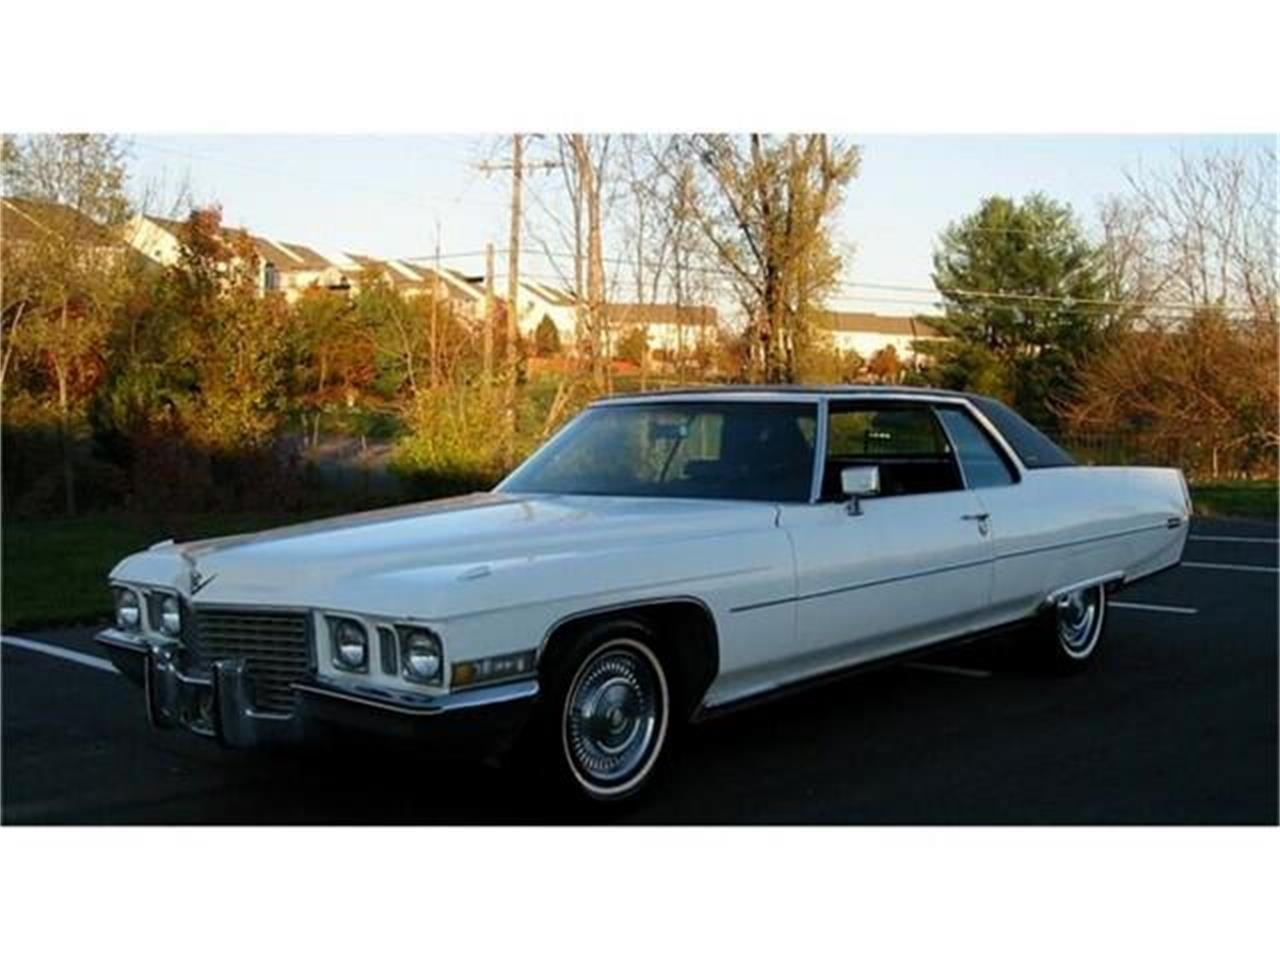 1972 Cadillac Coupe DeVille (CC-1379307) for sale in Harpers Ferry, West Virginia